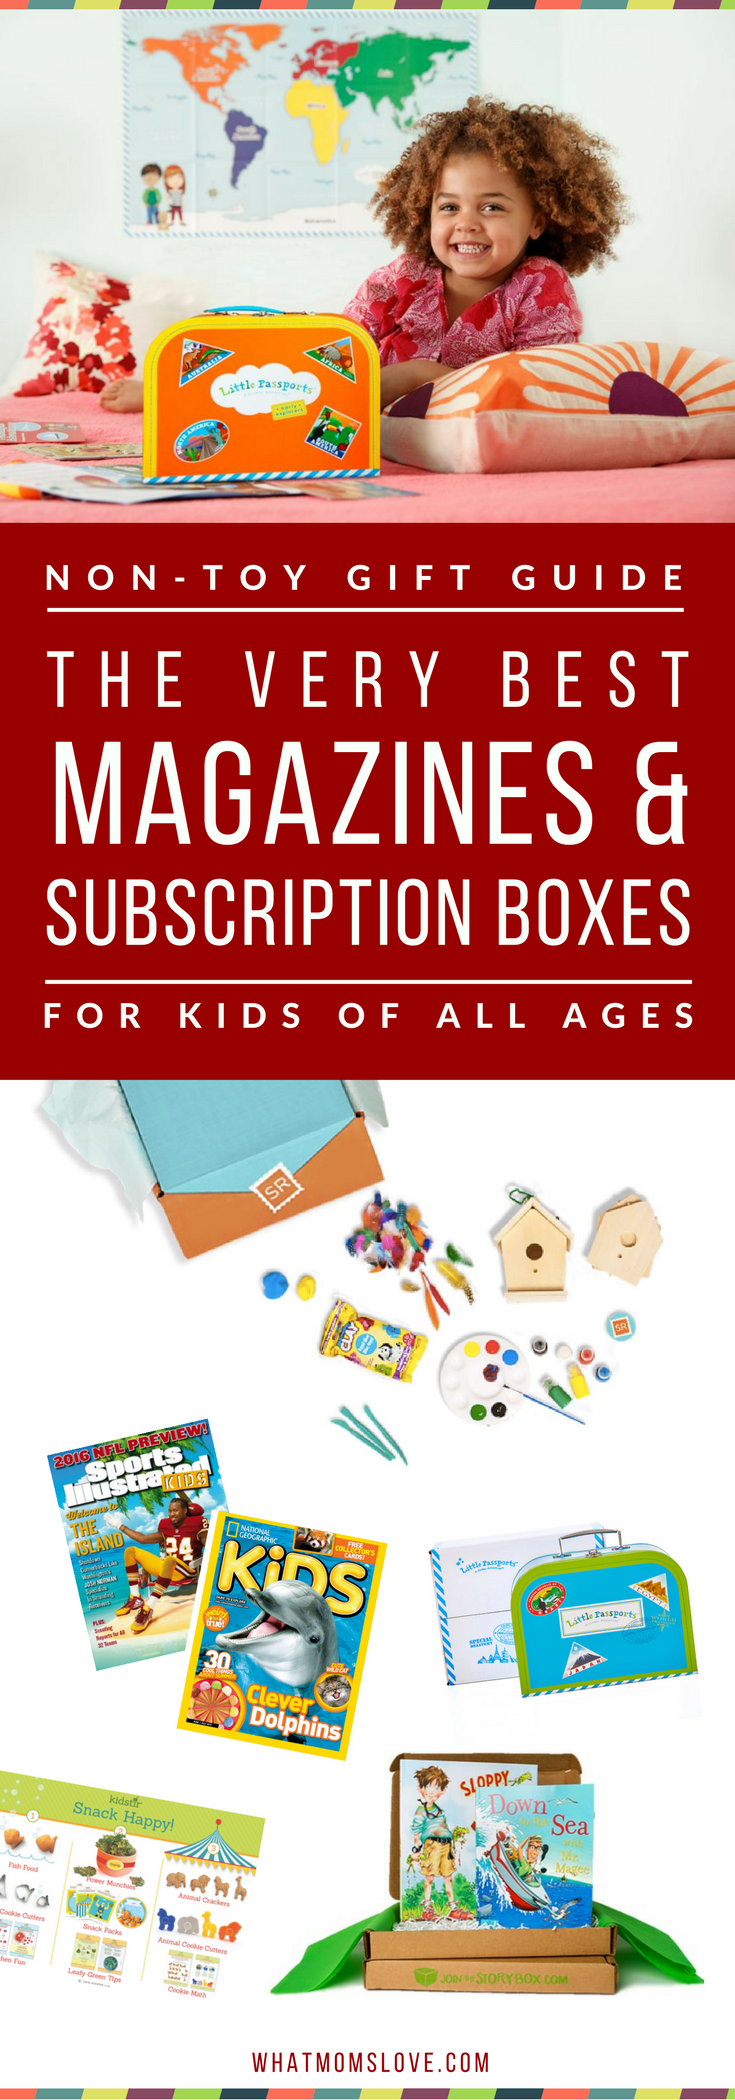 Non toy gift guide gifts to receive in your mailbox pinterest best magazine subscriptions and subscription boxes for kids part of the massive non toy gift guide with over 200 ideas and product recommendations give fandeluxe Image collections